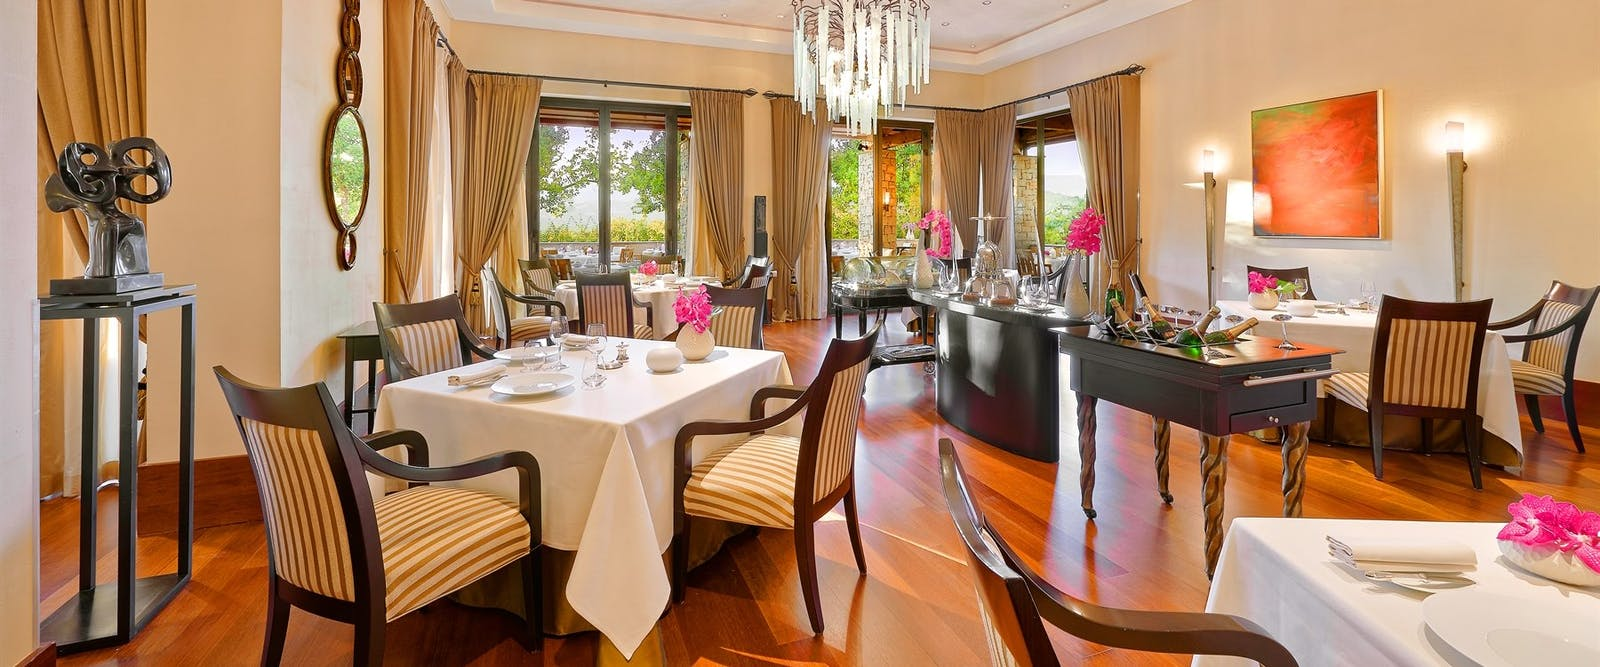 Restaurant Faventia at Terre Blanche Hotel Spa Golf Resort, Provence, France